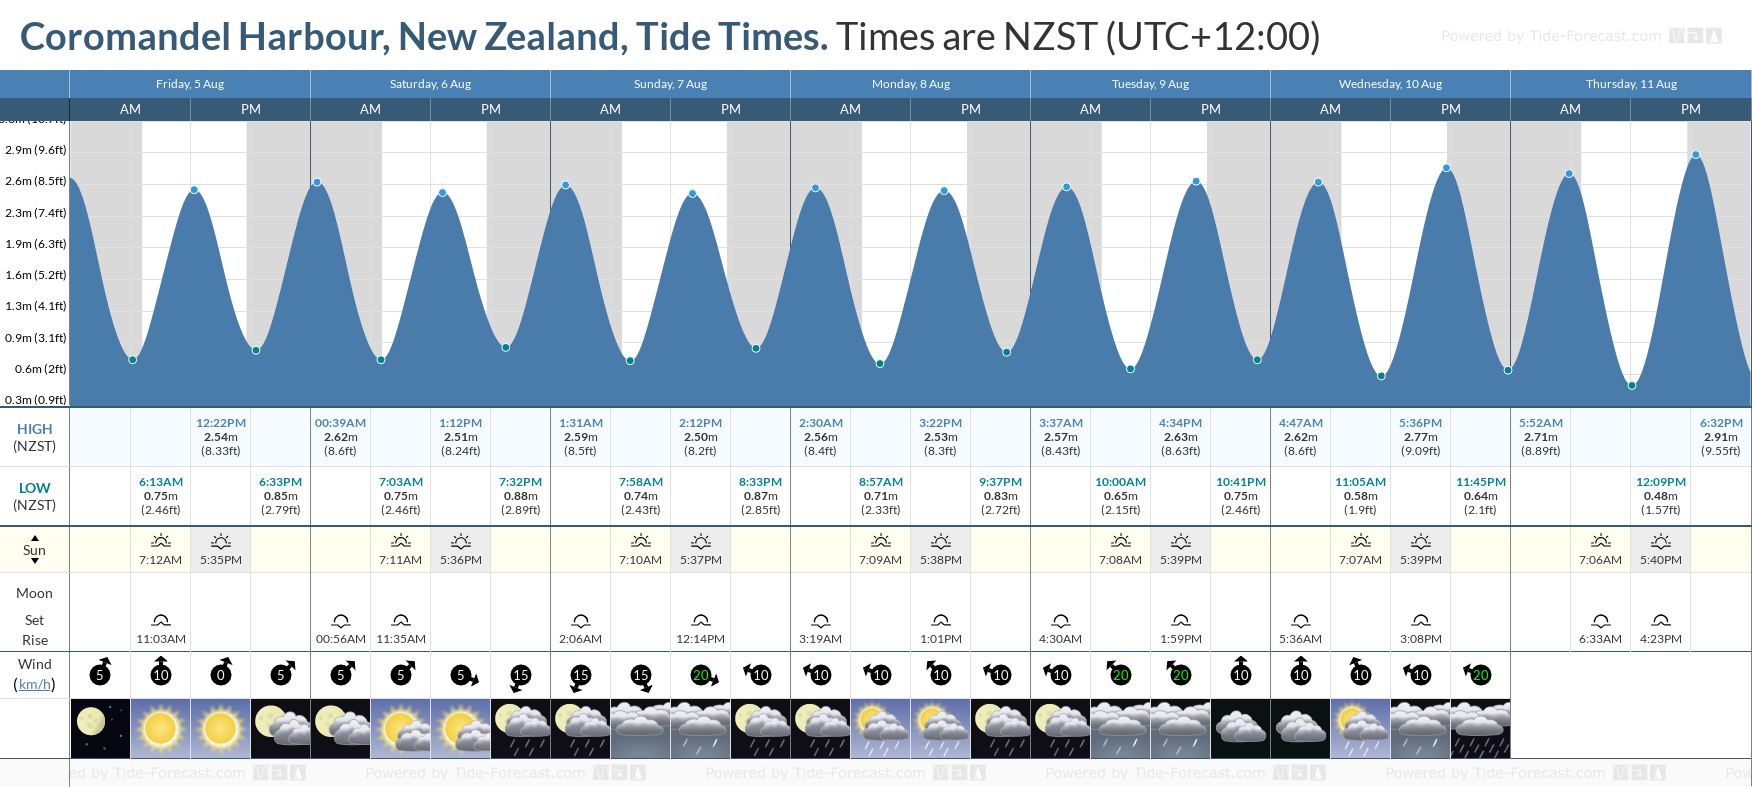 Coromandel Harbour, New Zealand Tide Chart including high and low tide tide times for the next 7 days